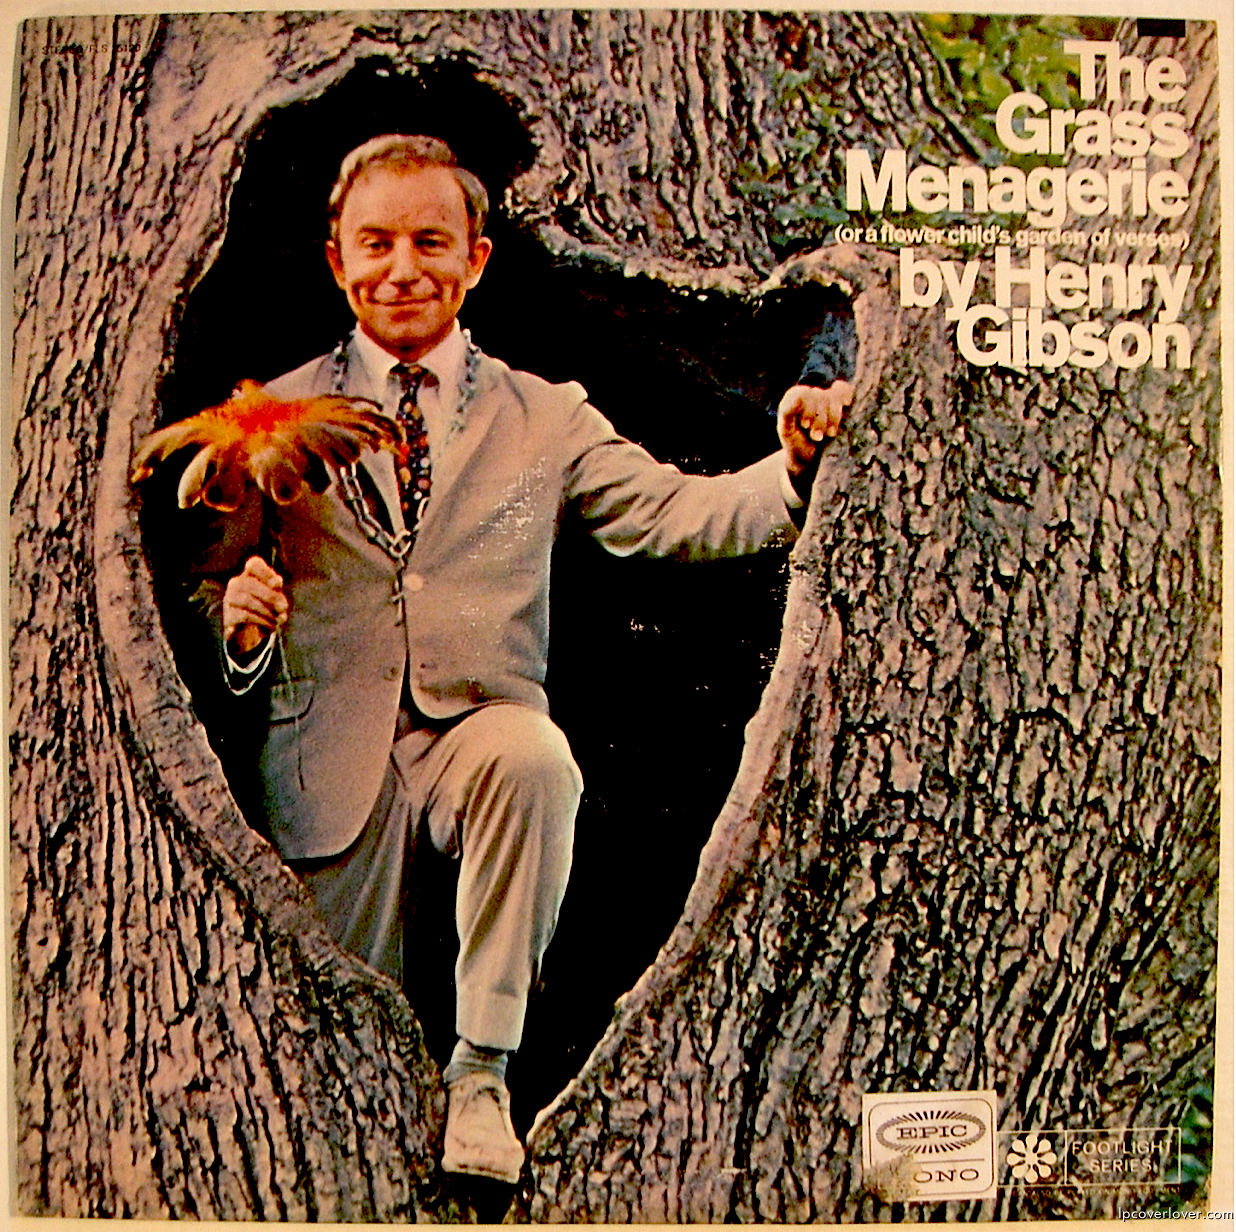 henry gibson last wordshenry gibson musician, henry gibson, henry gibson imdb, henry gibson stationers, henry gibson wikipedia, henry gibson laugh in, henry gibson actor, henry gibson last words, henry gibson net worth, henry gibson stationers ltd, henry gibson blues brothers, henry gibson quotes, henry gibson the burbs, henry gibson percussionist, henry gibson star trek, henry gibson guitars, henry gibson marcella, henry gibson wedding crashers, henry gibson gay, henry gibson grave